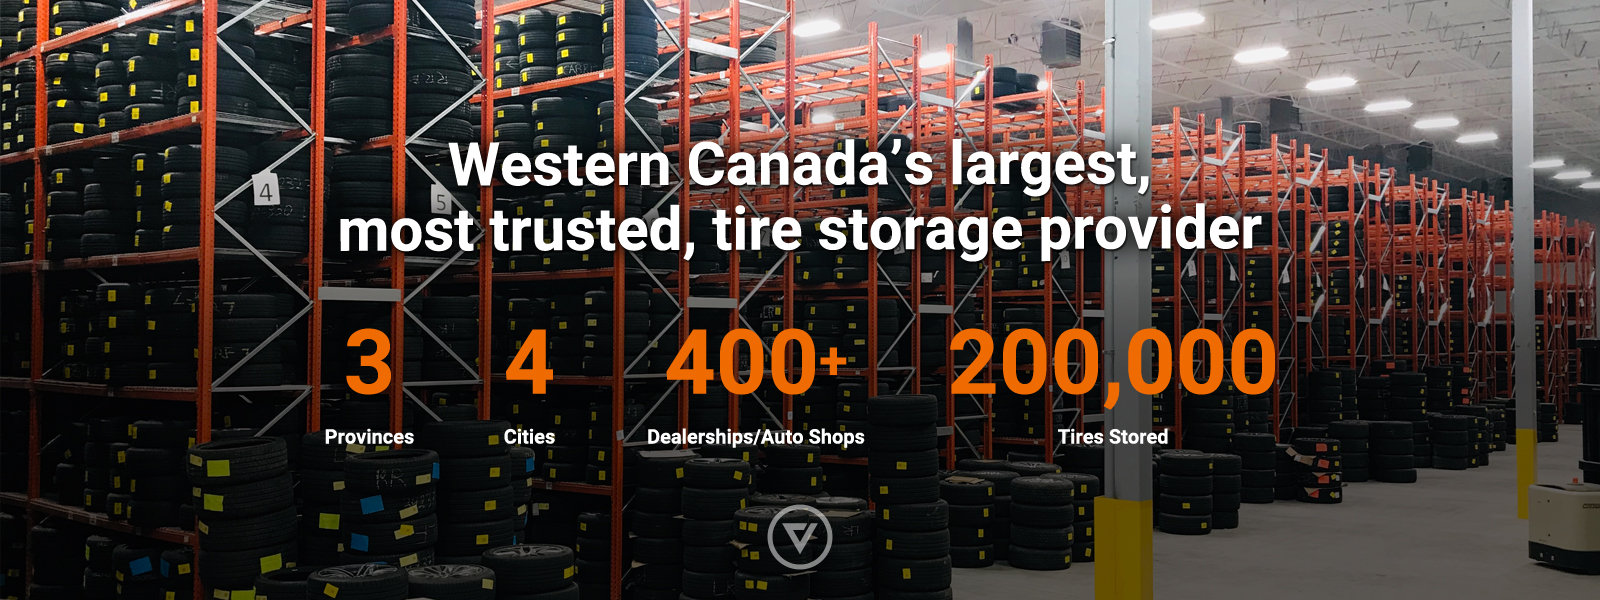 Western Canada's largest, most trusted, tire storage provider